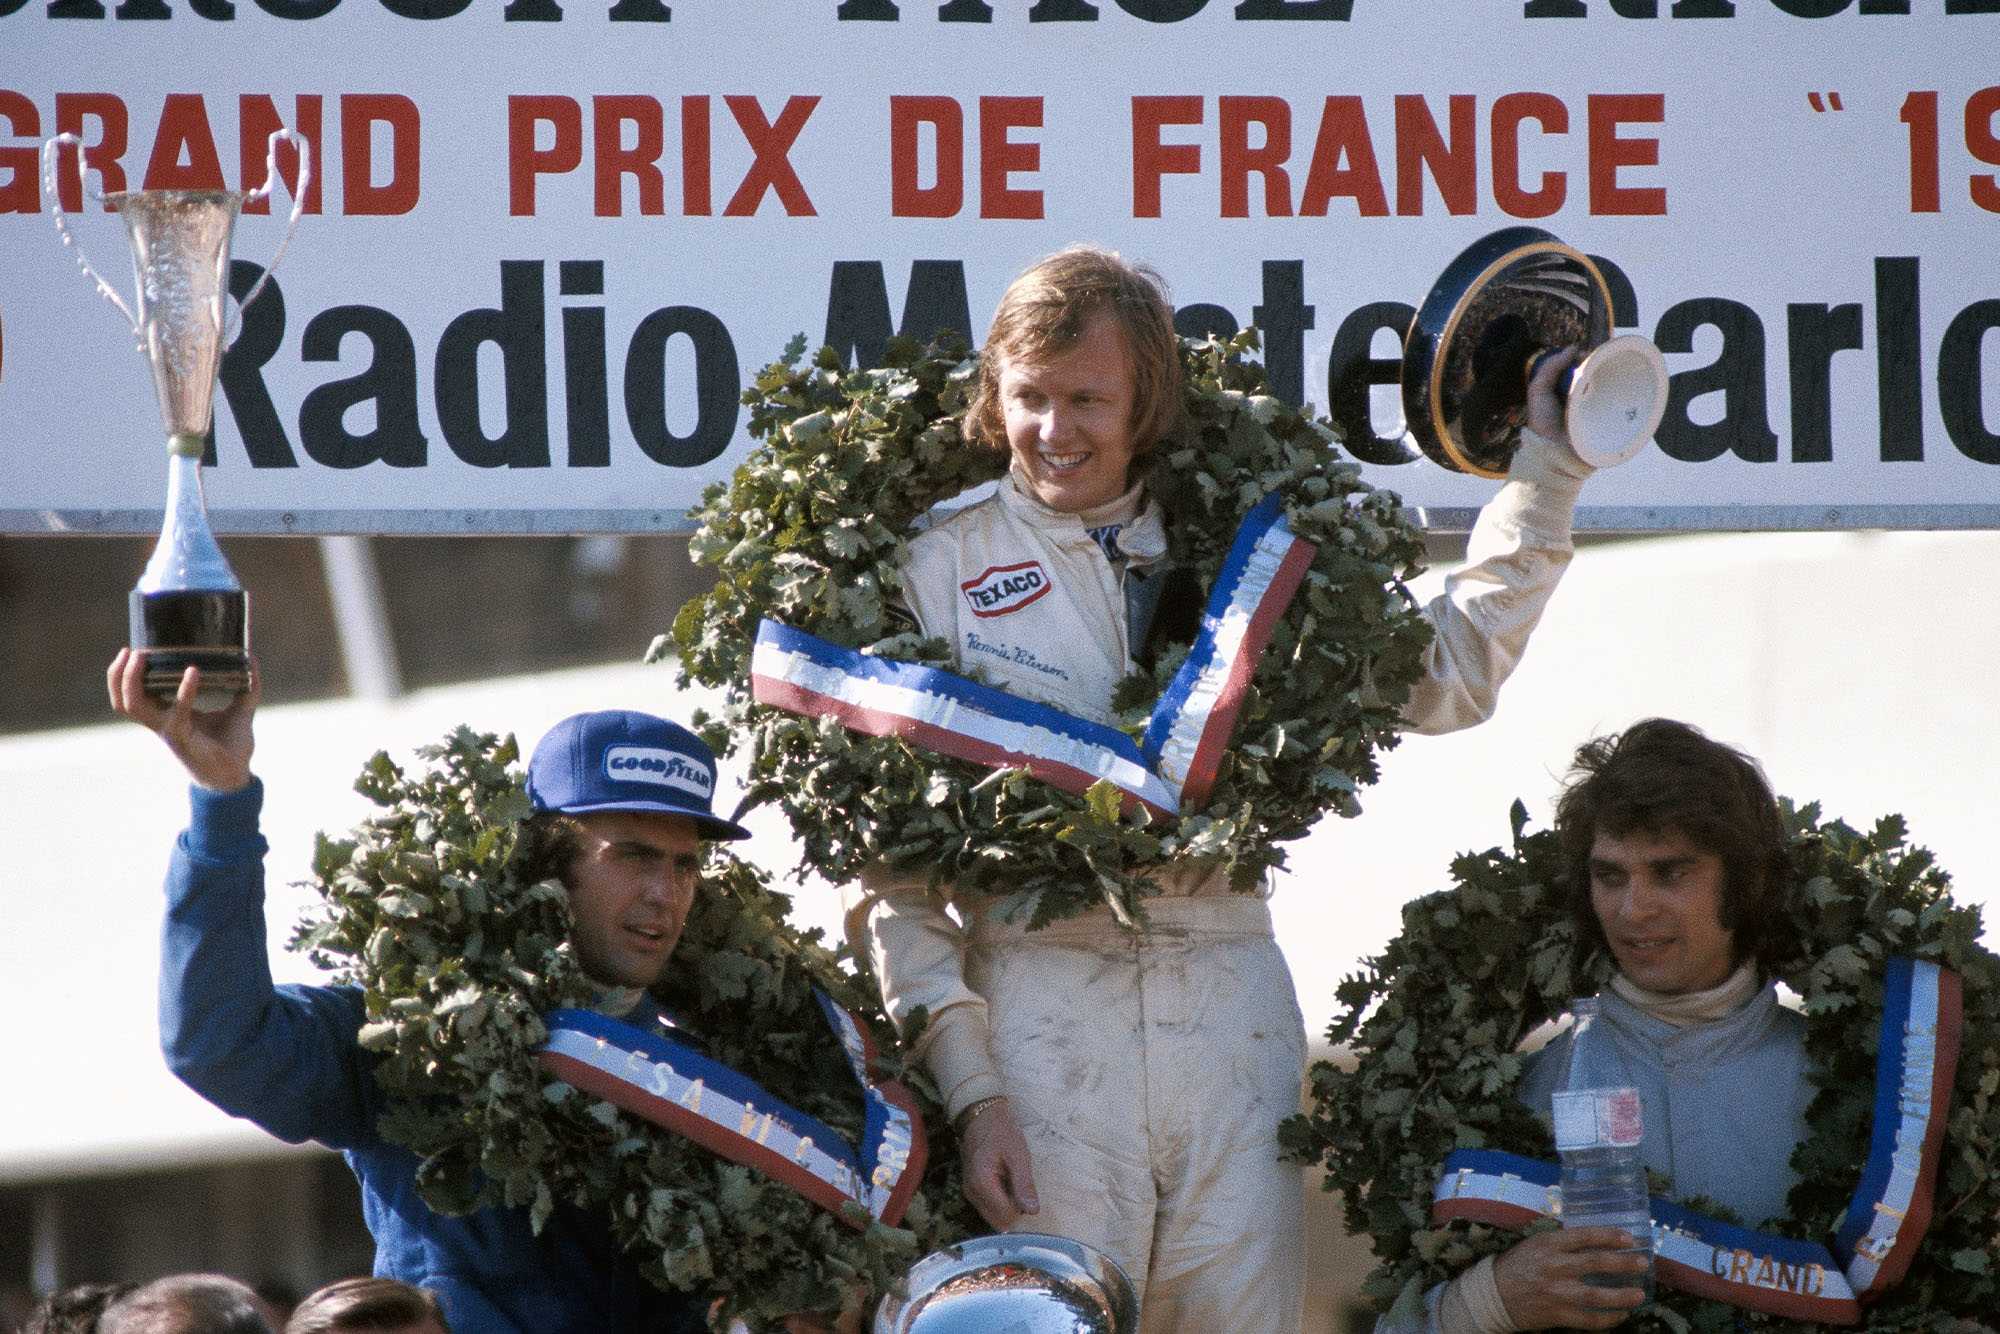 Ronnie Peterson celebrates his win on the podium at the 1973 French Grand Prix, Paul Ricard.